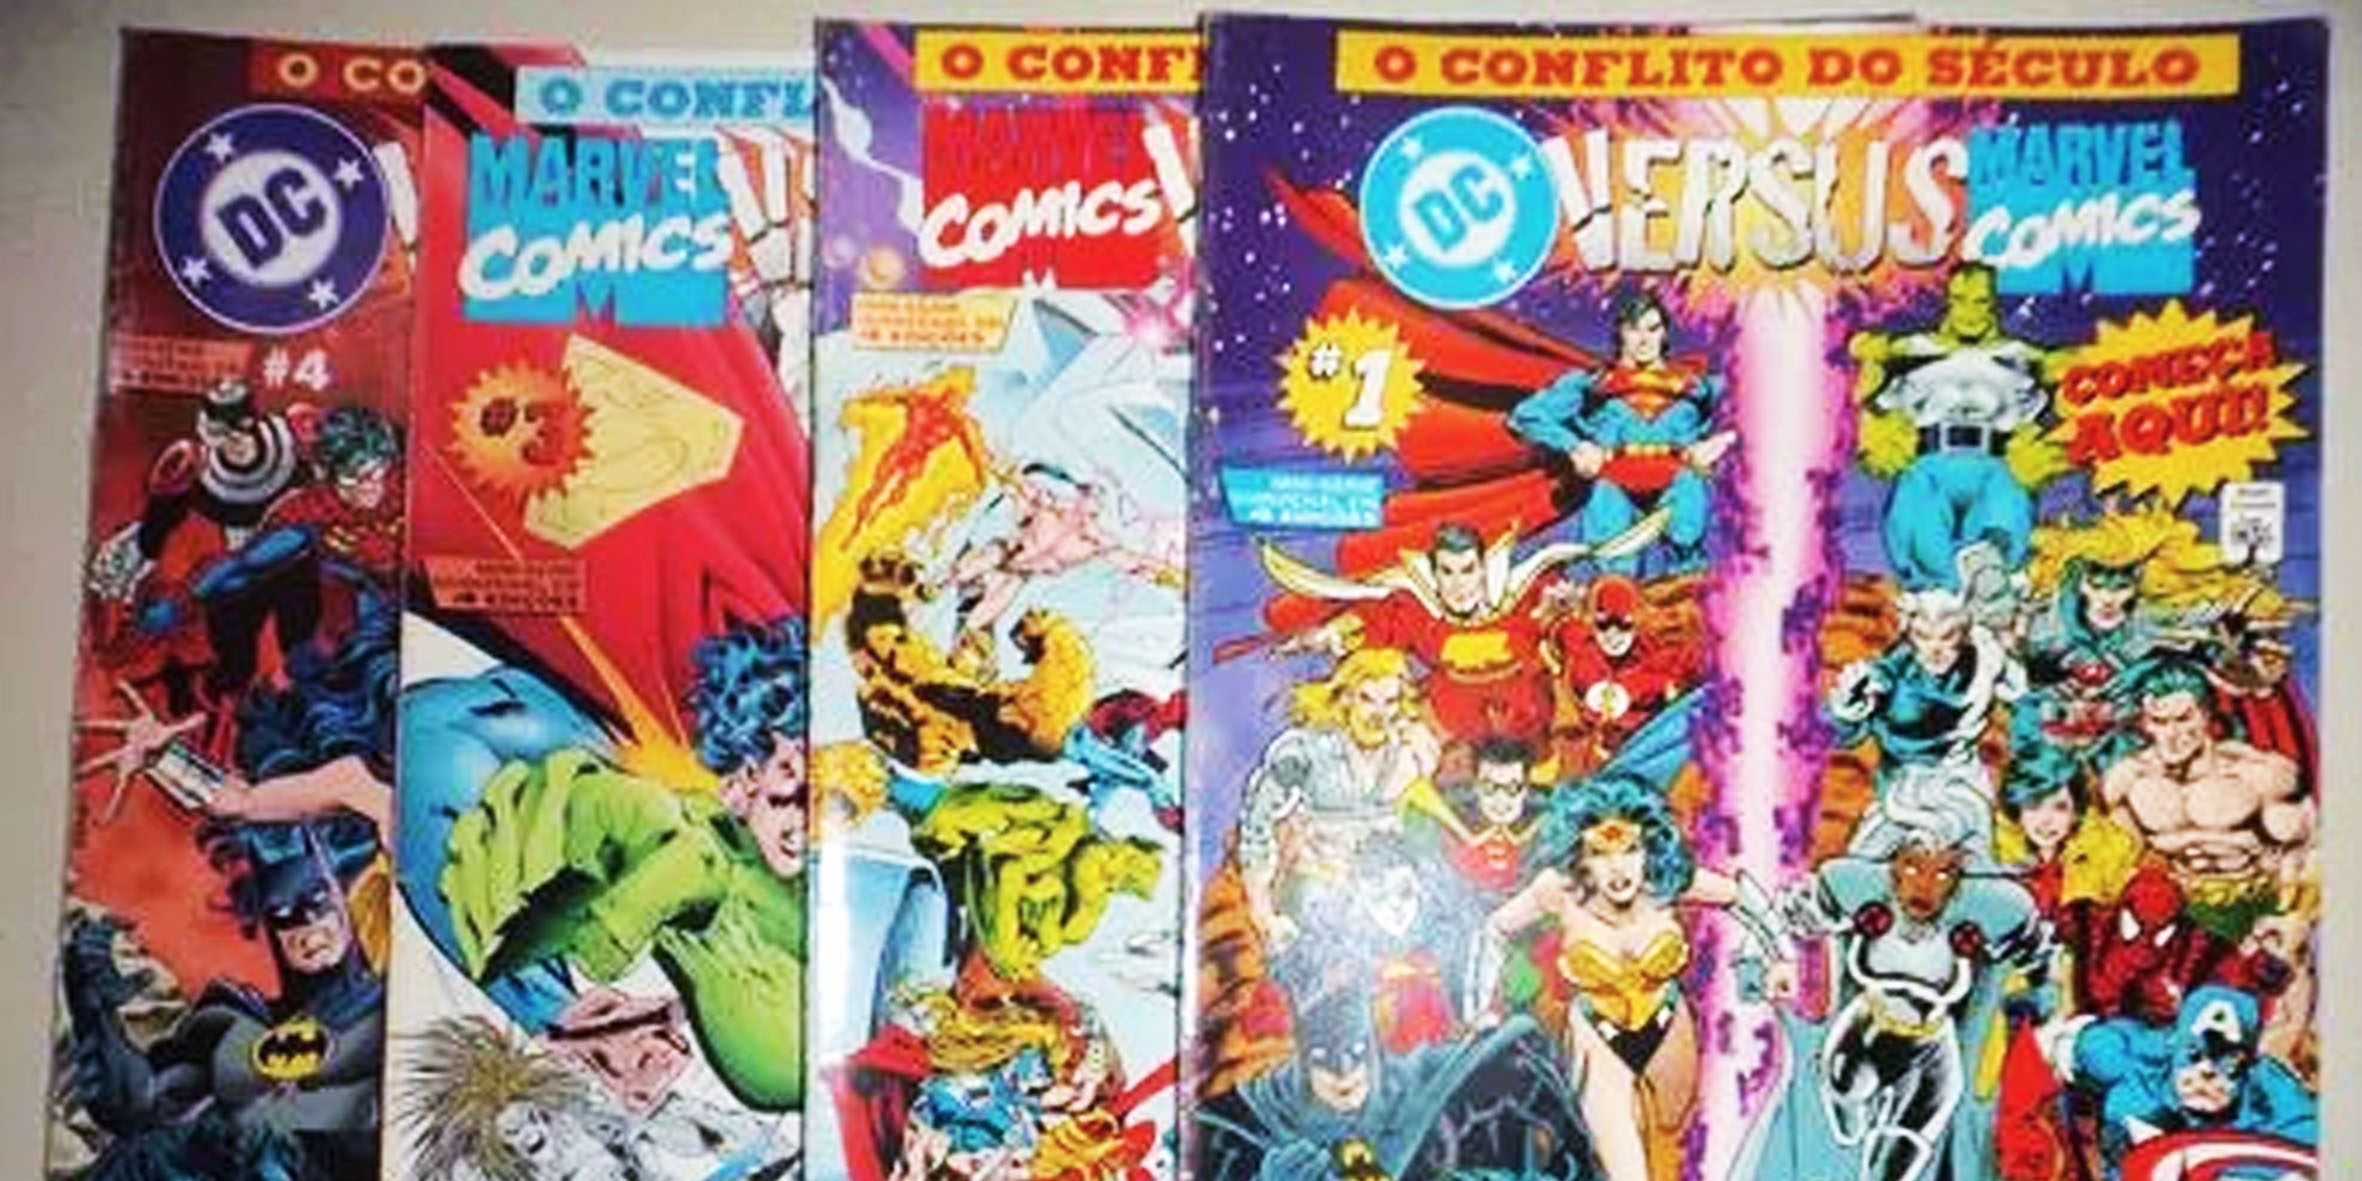 Marvel vs DC: O Conflito do Século